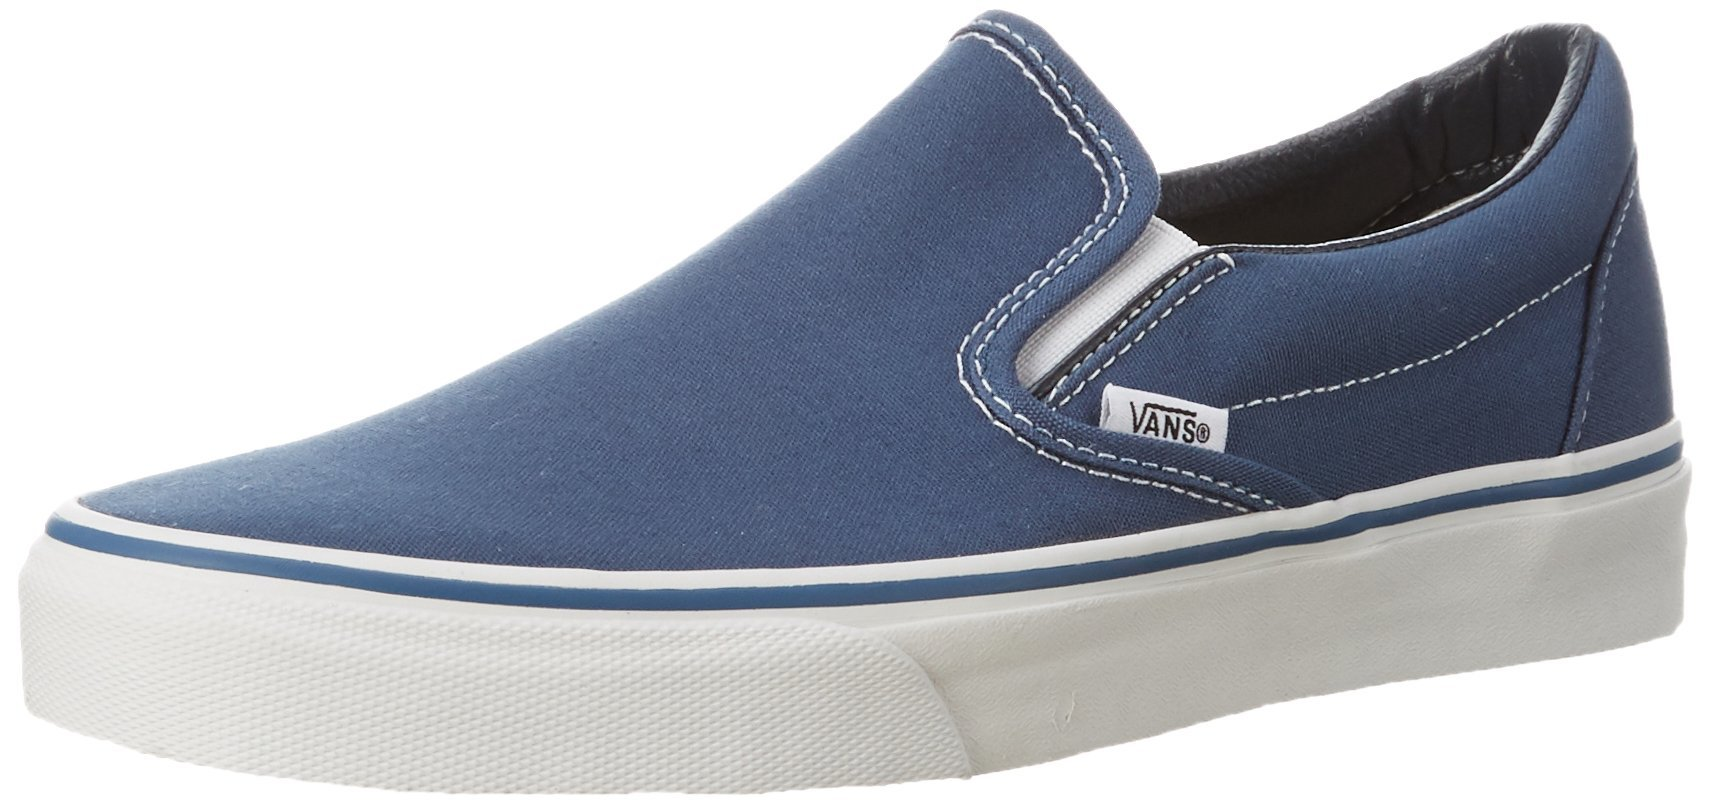 Vans Unisex Classic Slip-On(tm) Core Classics Navy Sneaker Men's 7.5, Women's 9 Medium by Vans